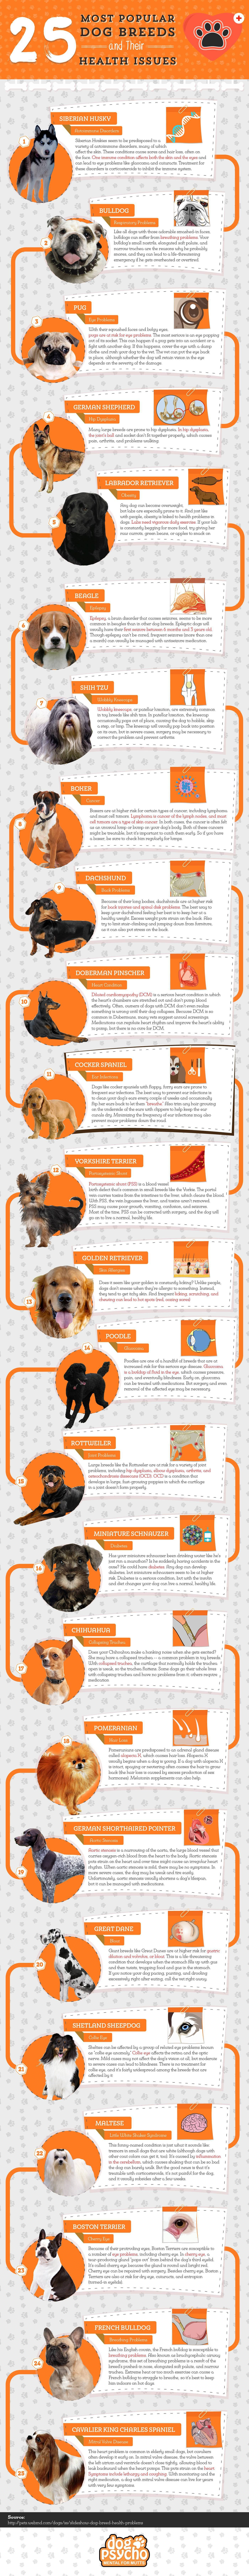 Common problems with popular breeds